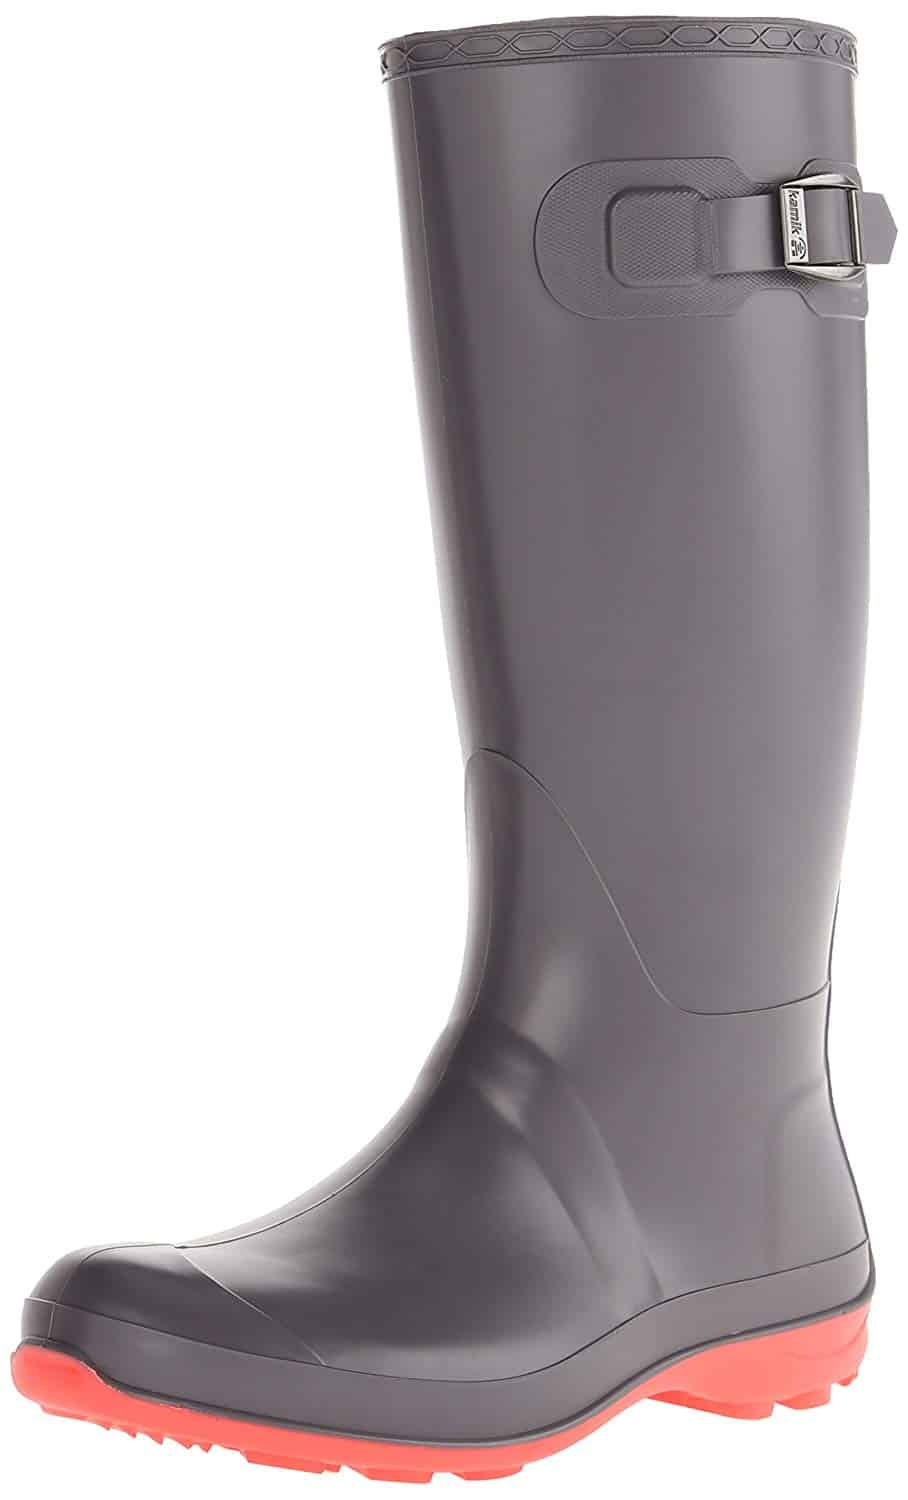 rubber boots gumboots